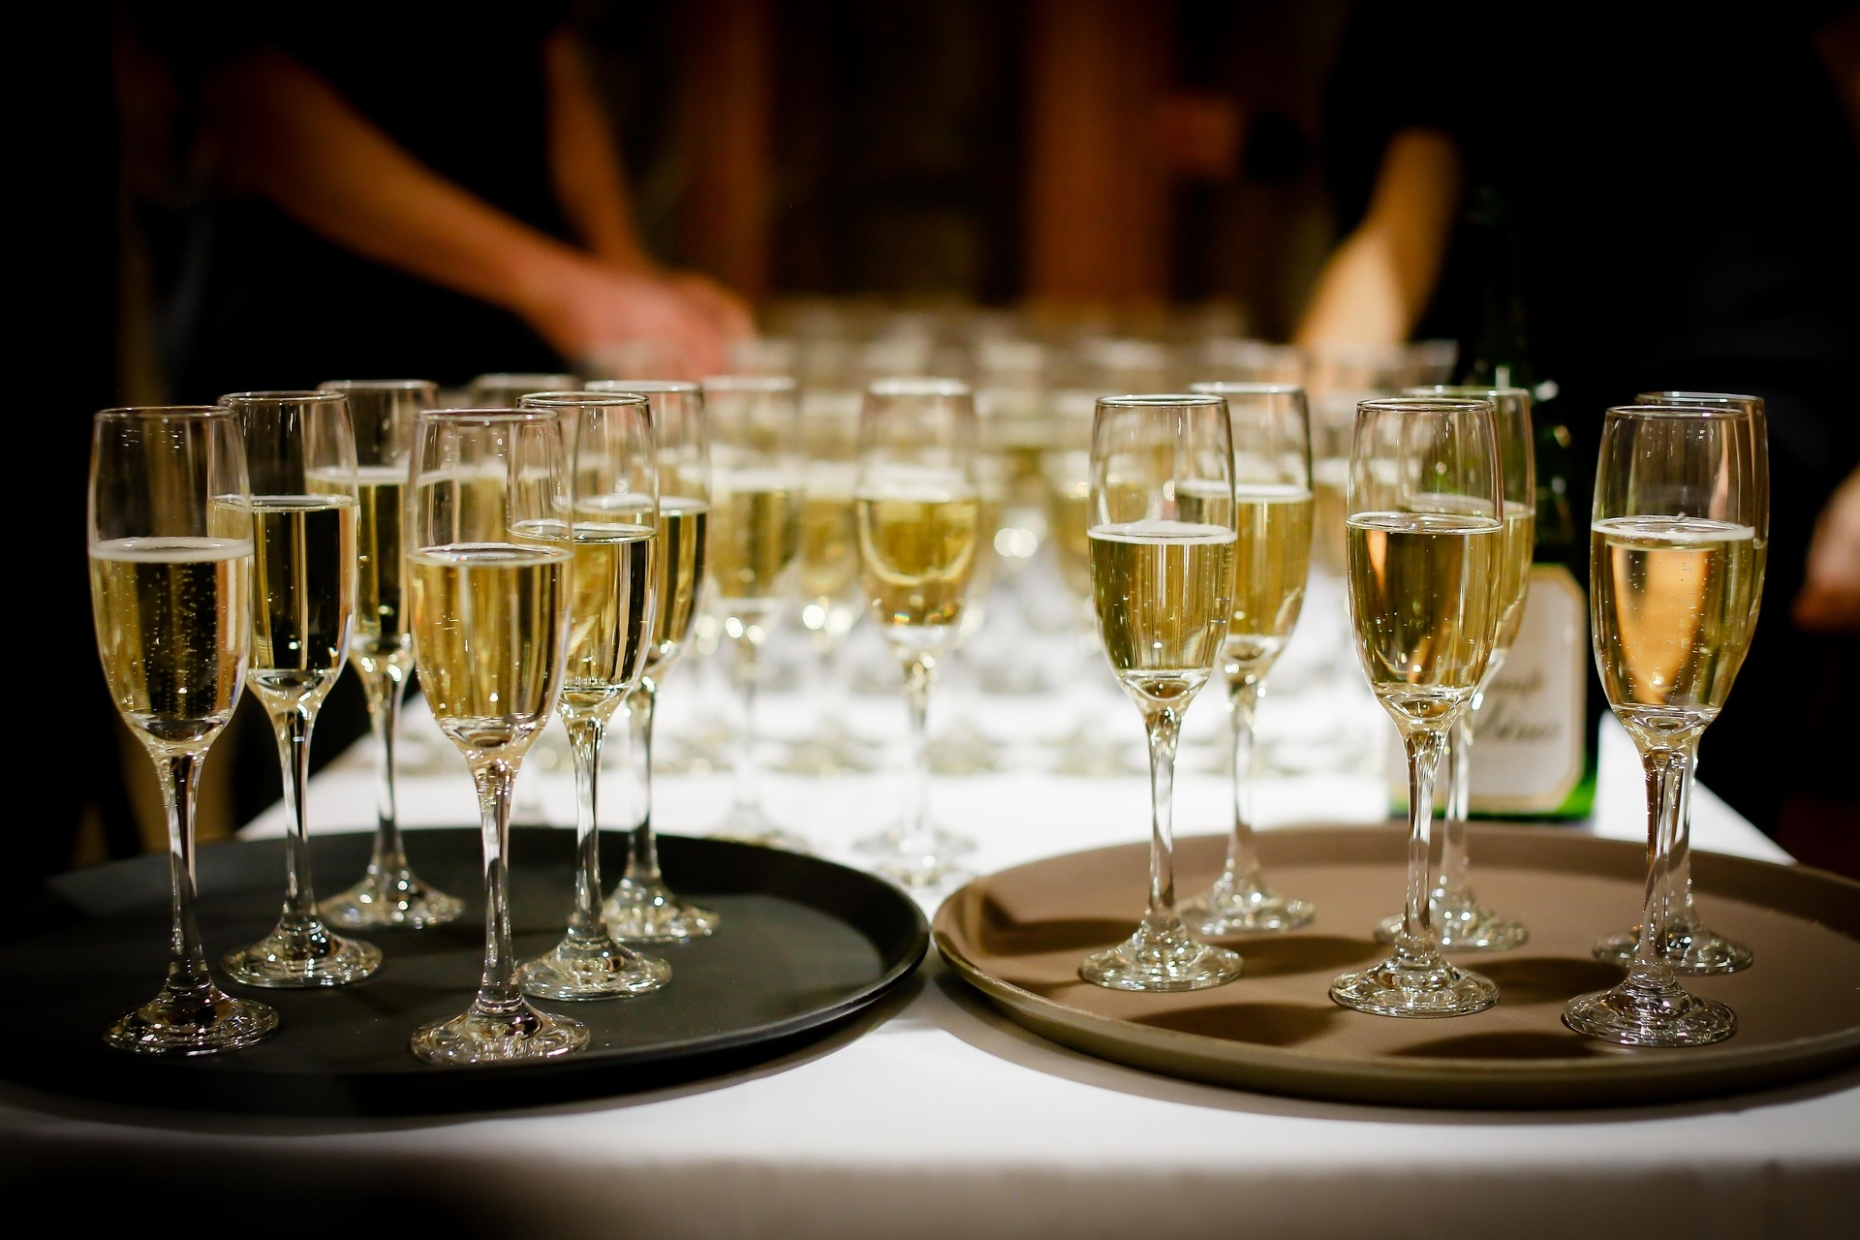 IDEAL FOR CELEBRATIONS AND EVENTS!